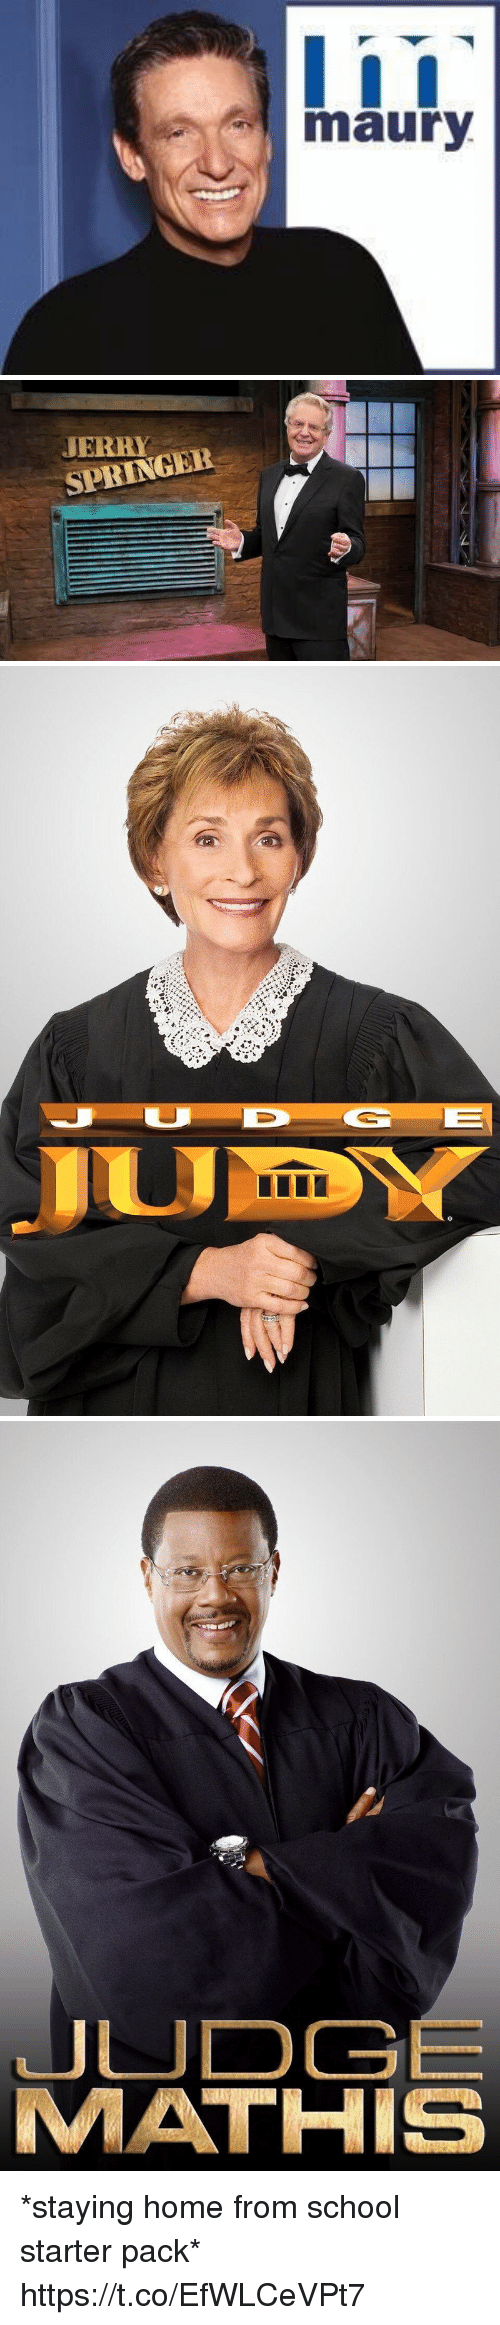 Jerry Springer: I  maury   JERRY  SPRINGER   DY   JUDGE  MATHIS *staying home from school starter pack* https://t.co/EfWLCeVPt7